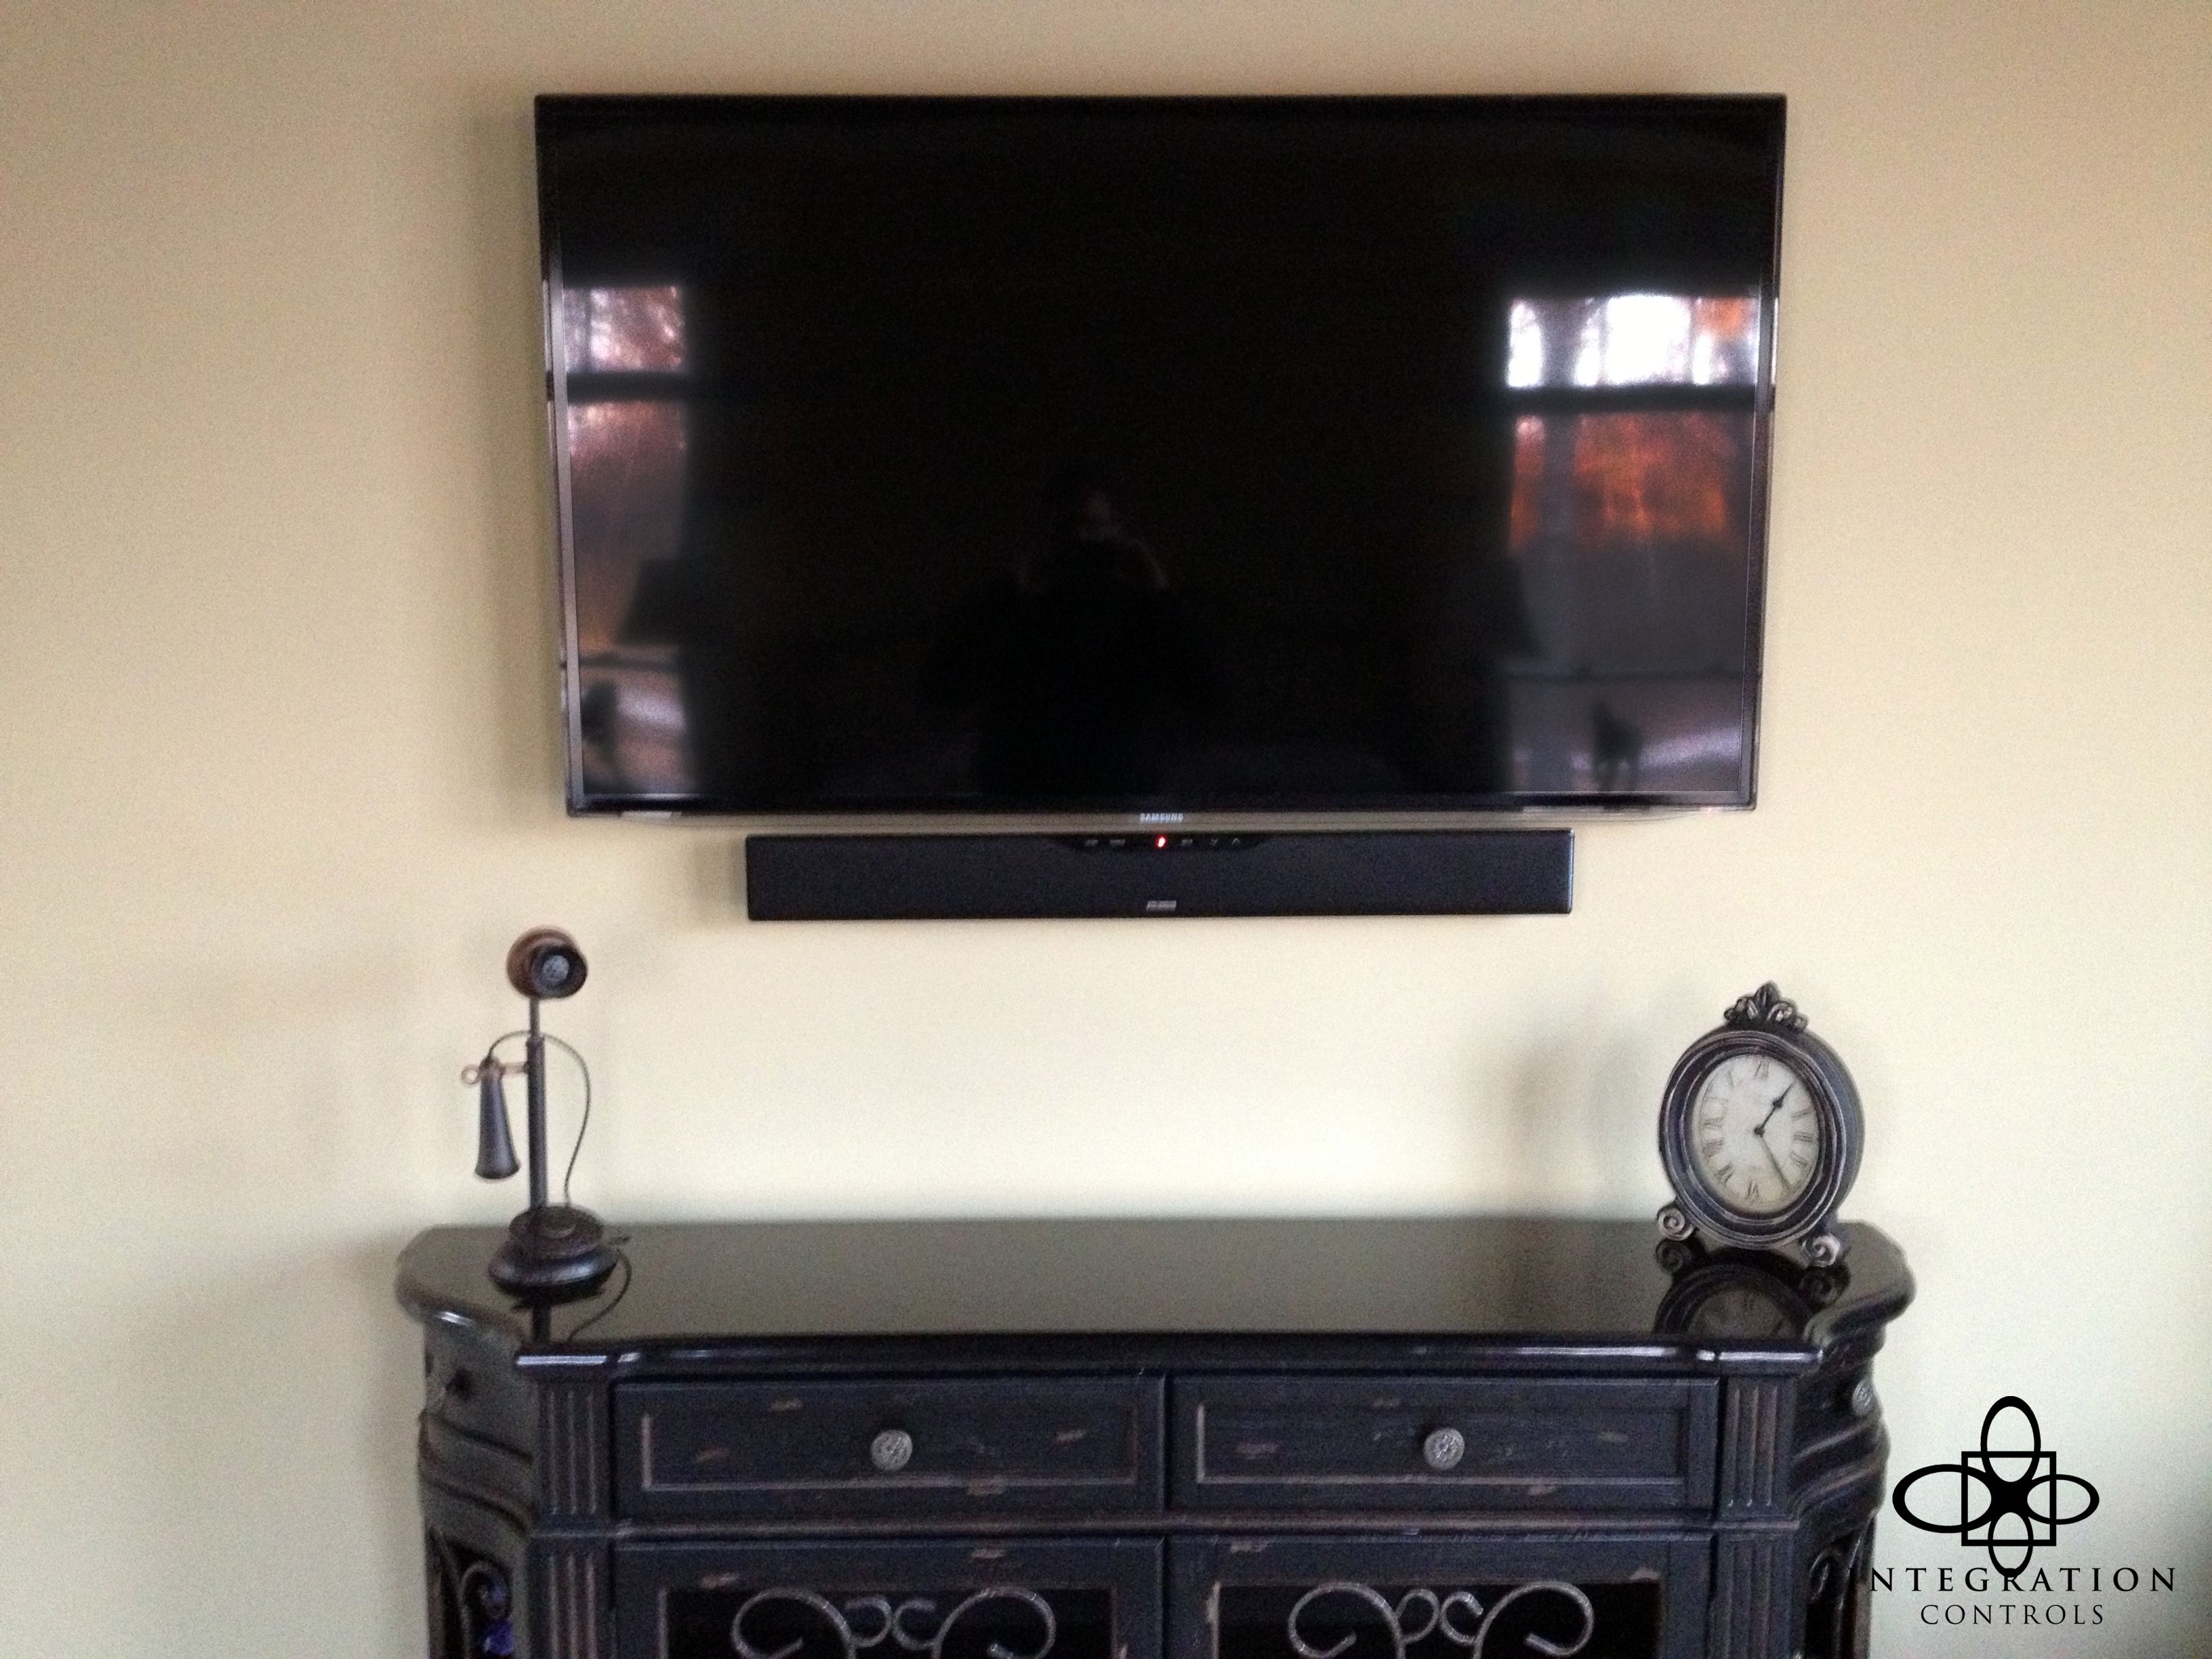 A Simple On Wall Television Installation, Paired With A Small Soundbar,  Offers Better